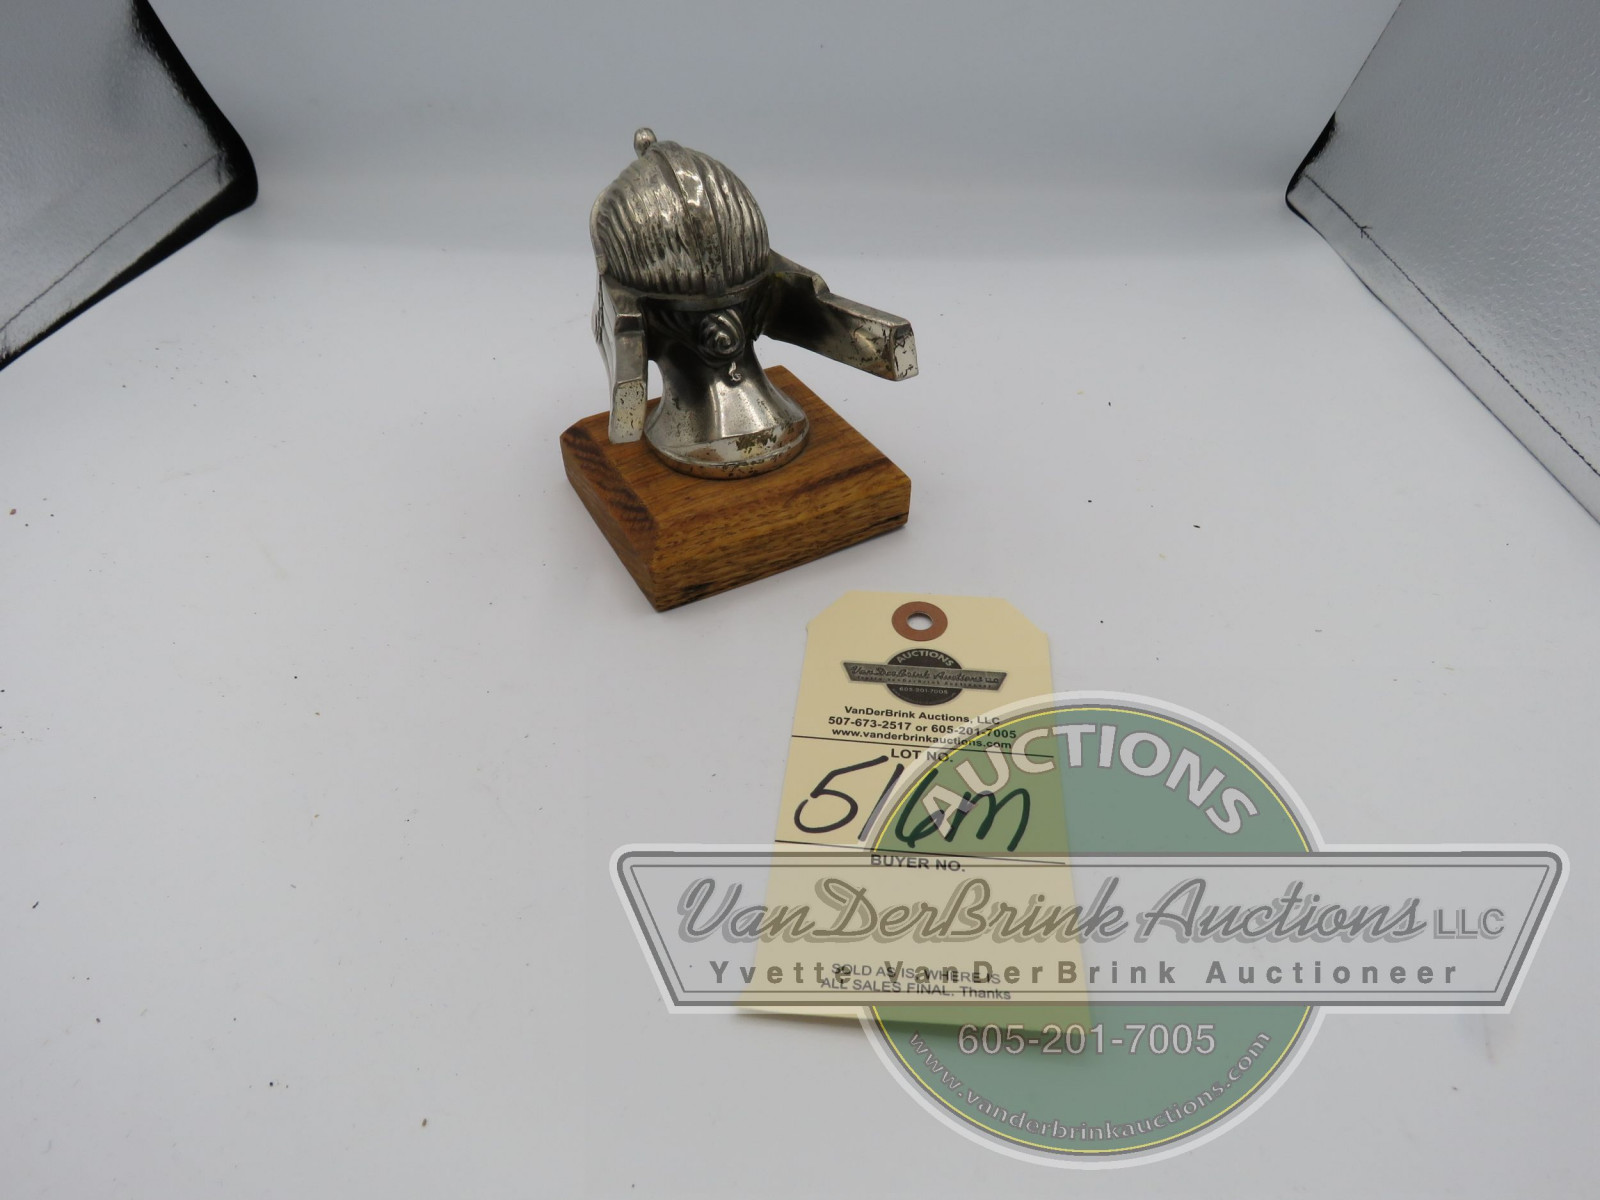 RARE STUTZ INDIAN RADIATOR CAP - Image 2